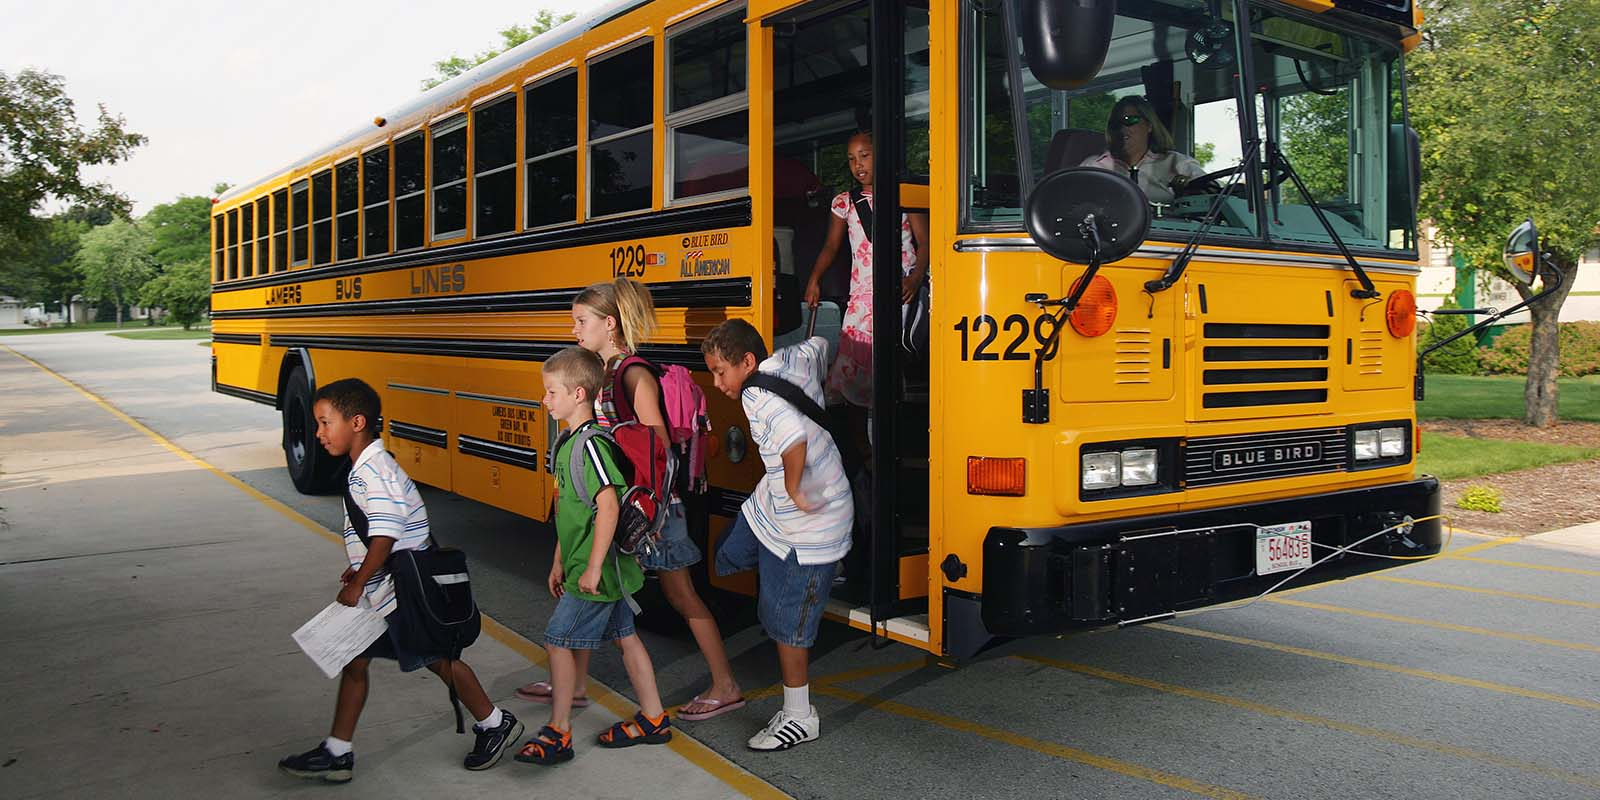 Lamers Bus Lines, Inc. school bus dropping off children